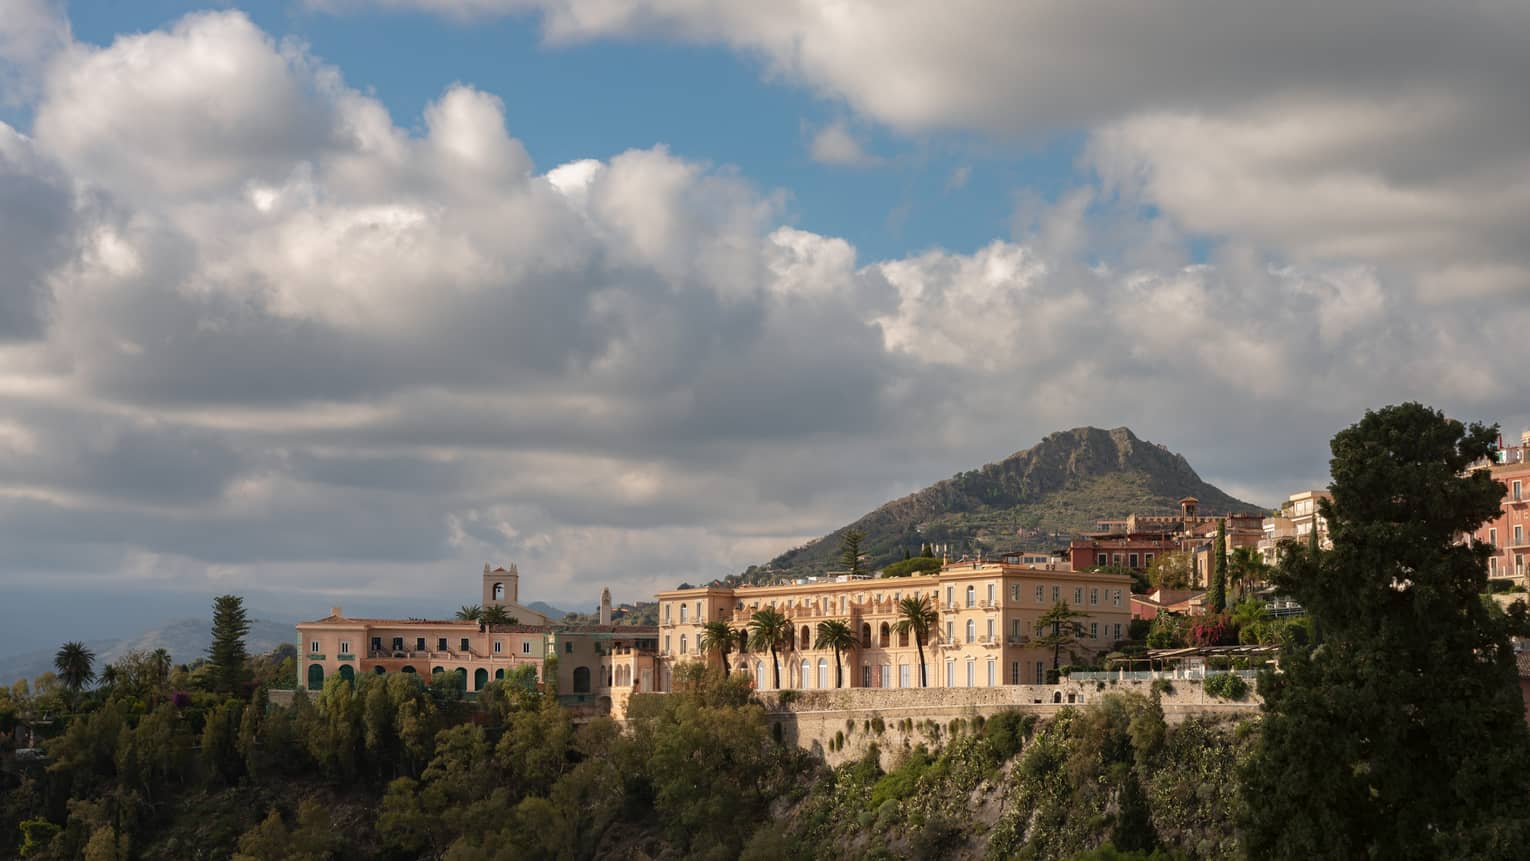 San Domenico Palace, Taormina, Sicily, perched on a green hill